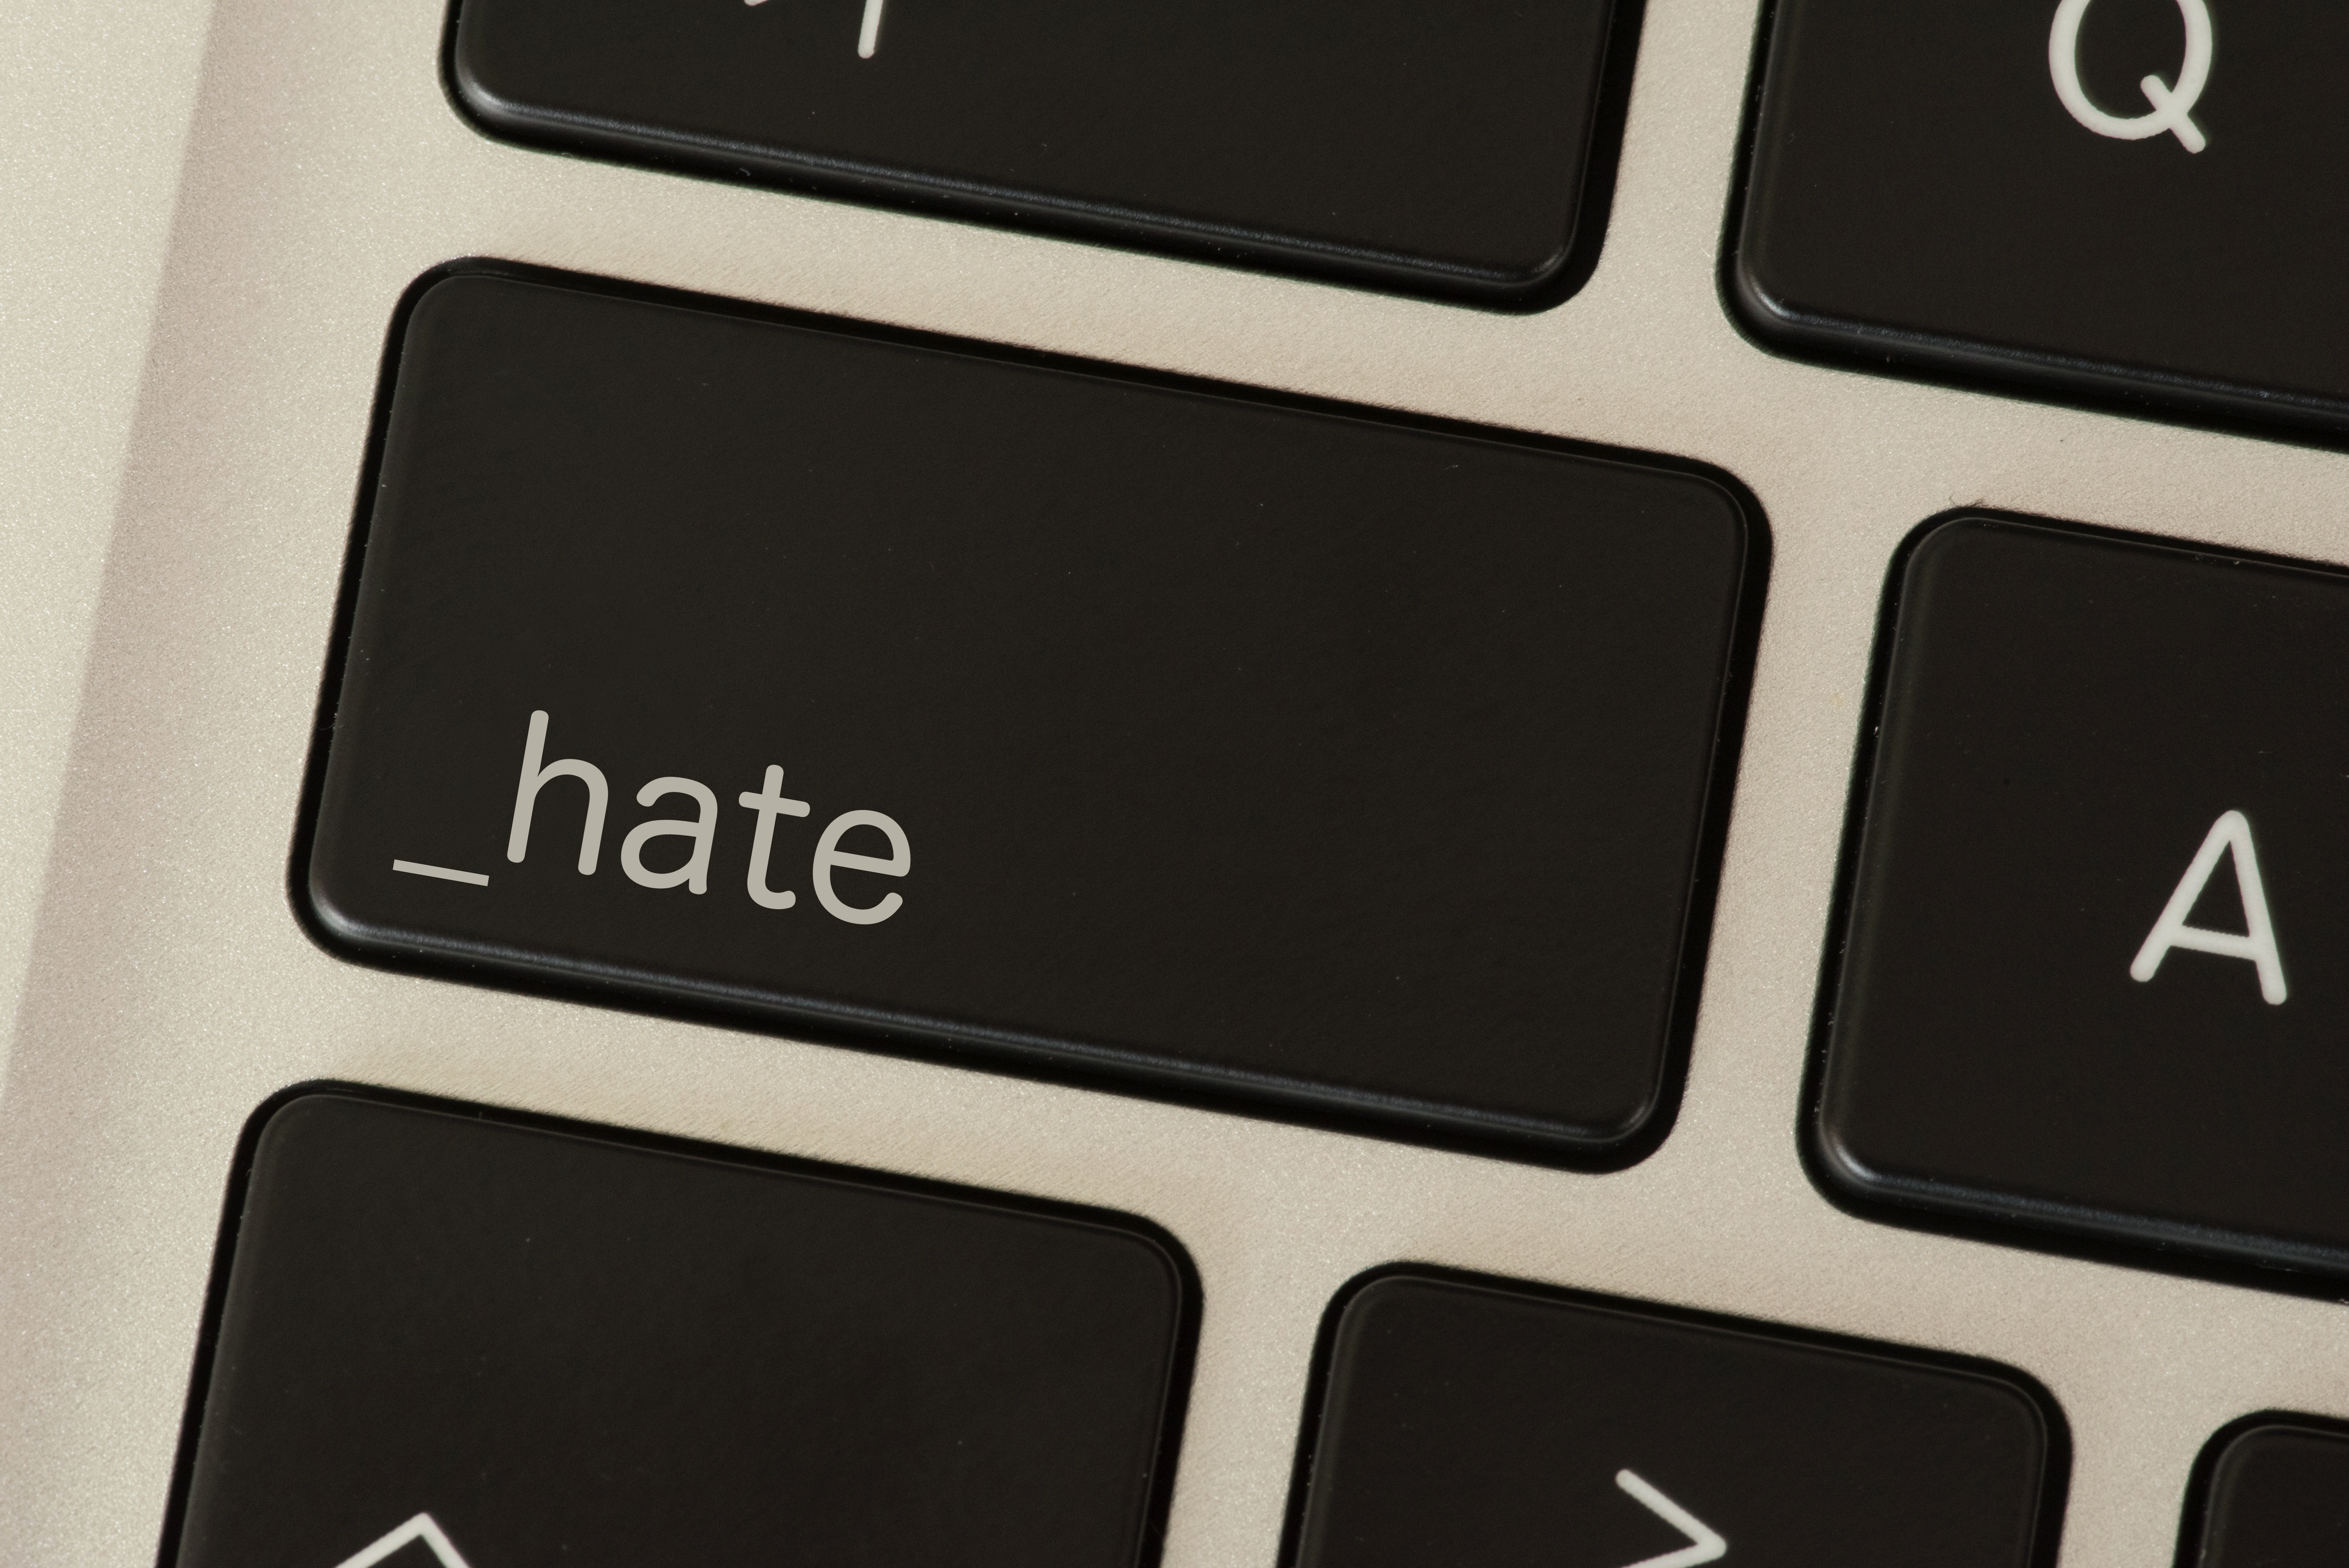 How social media recommendation algorithms help spread hate